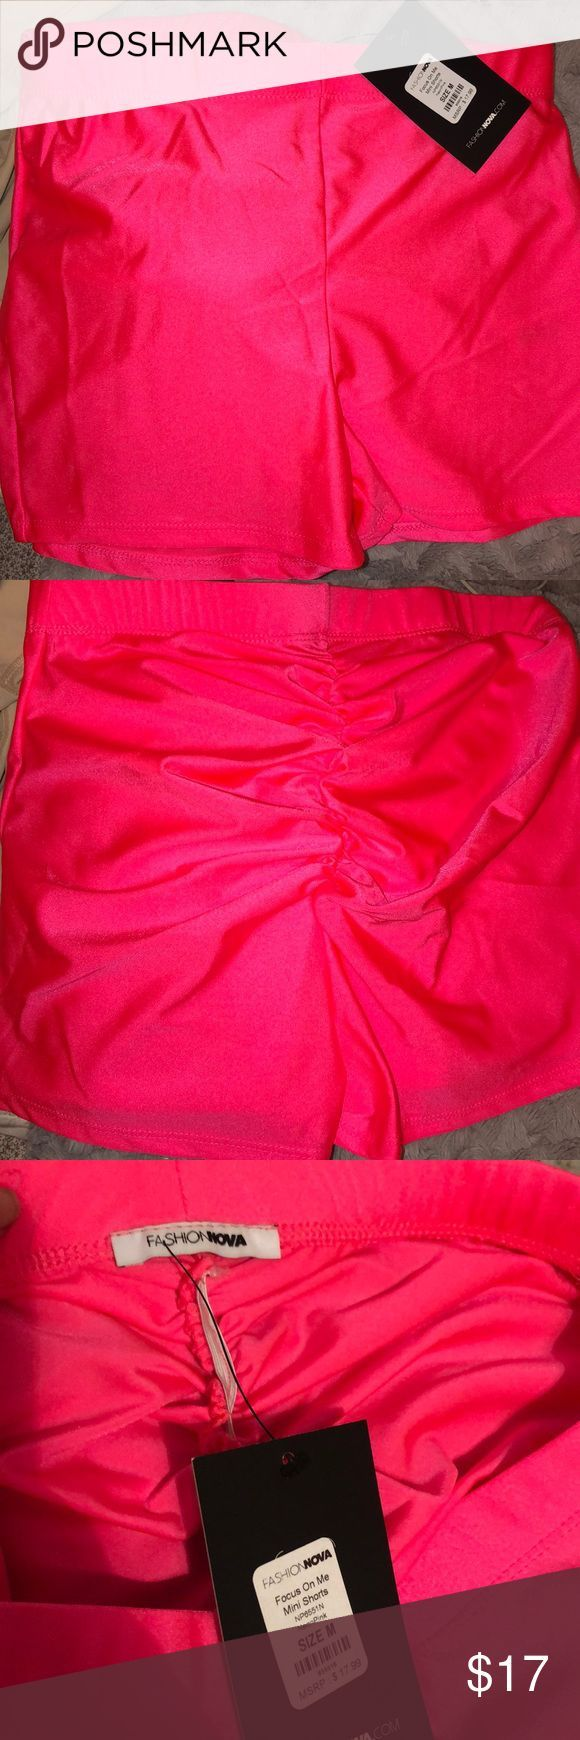 Pink Biker Shorts New ! Size M , bought the wrong size  Very cute nice fit the e…  – Biker Shorts